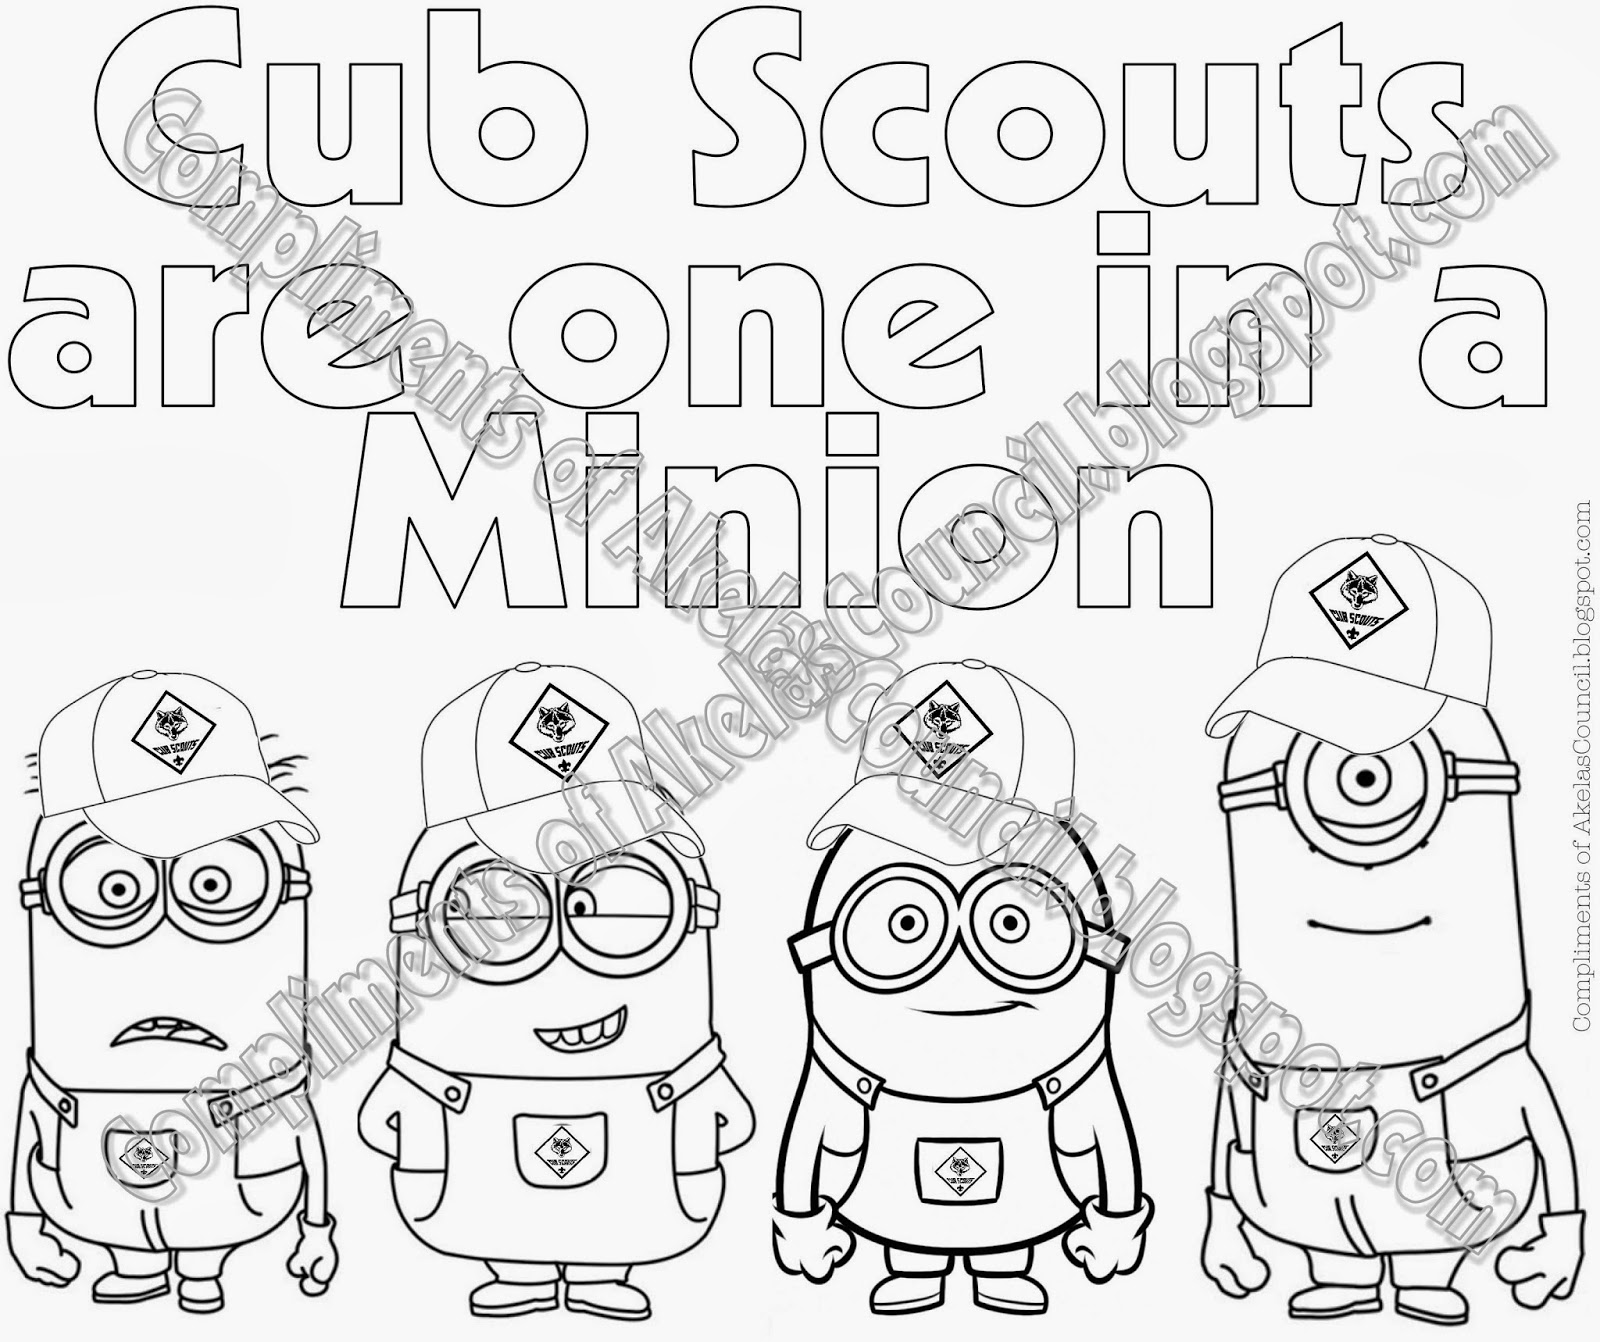 Cub Scout Coloring Pages Akela's Council Cub Scout Leader Training Cub Scout Minions